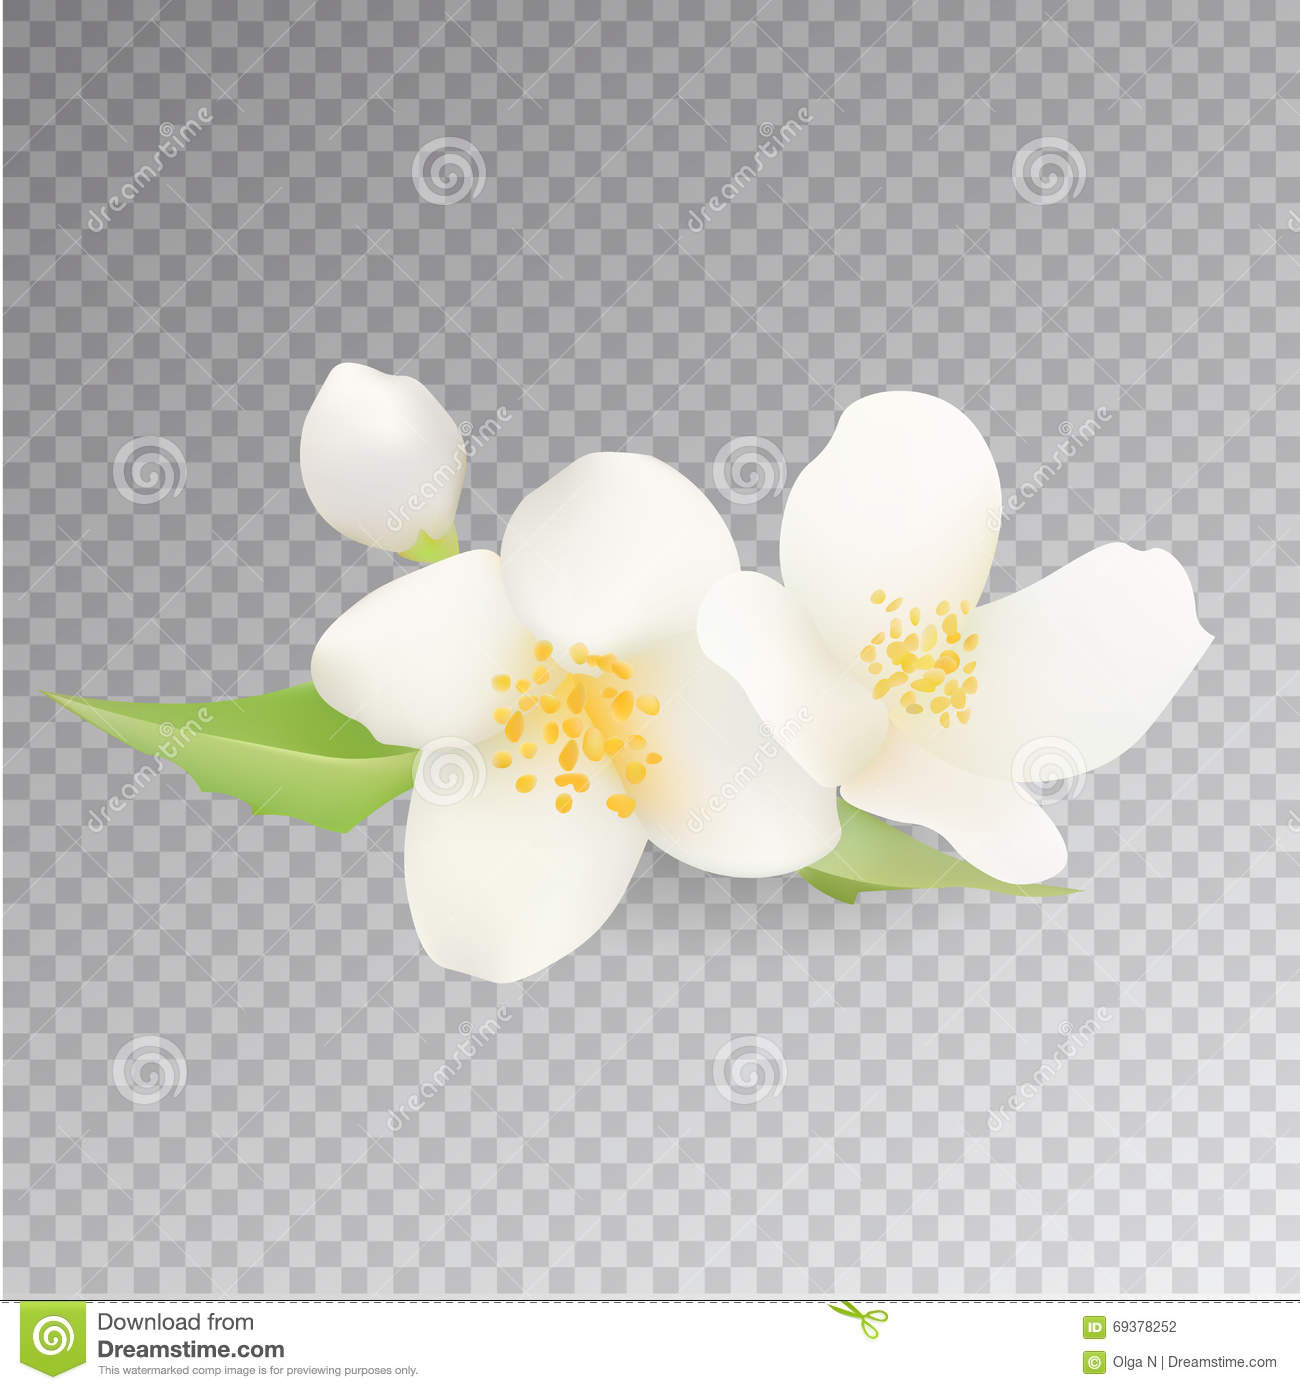 Realistic Jasmine Flower Icon On Transparent Background Vector